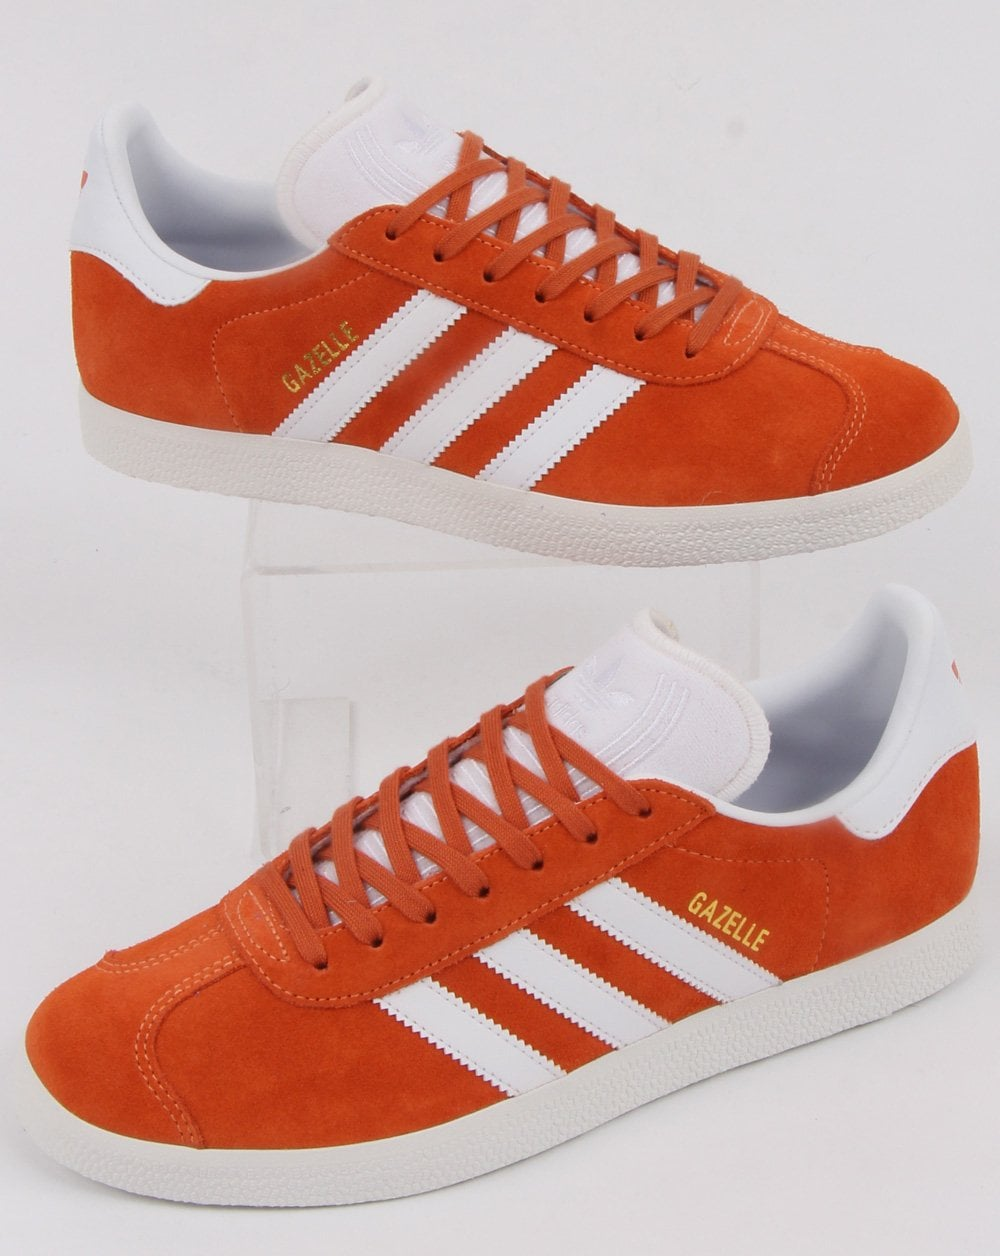 adidas gazelle rose orange